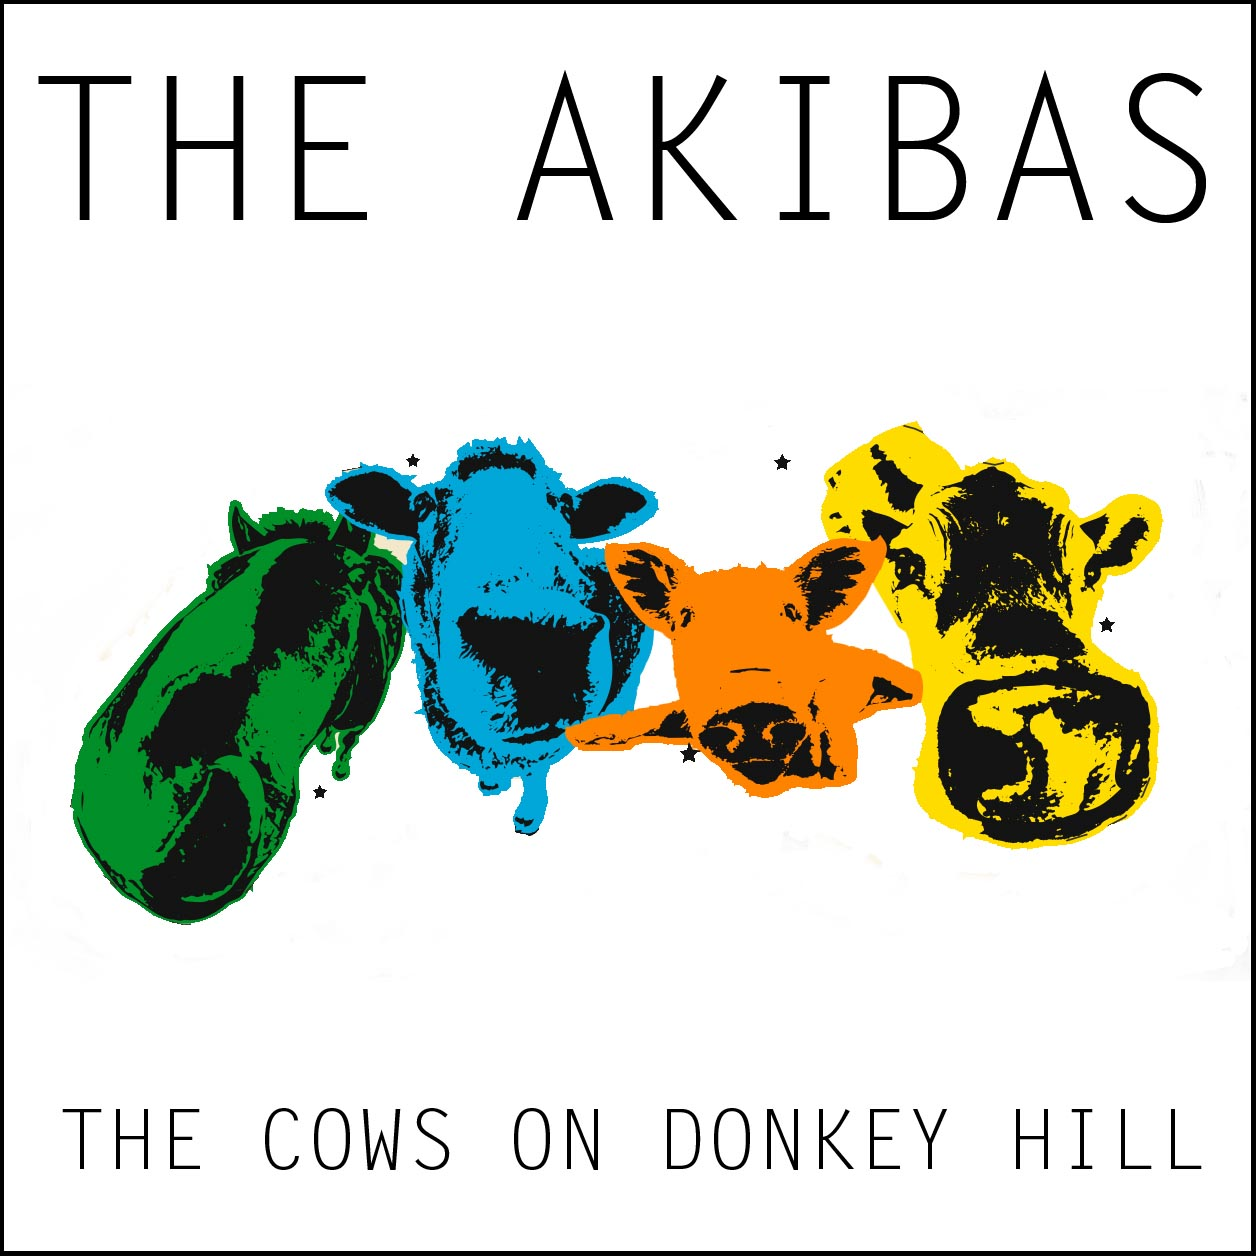 http://indiemusicpeople.com/uploads/112047_6_27_2010_7_54_24_AM_-_the_small_cows.jpg